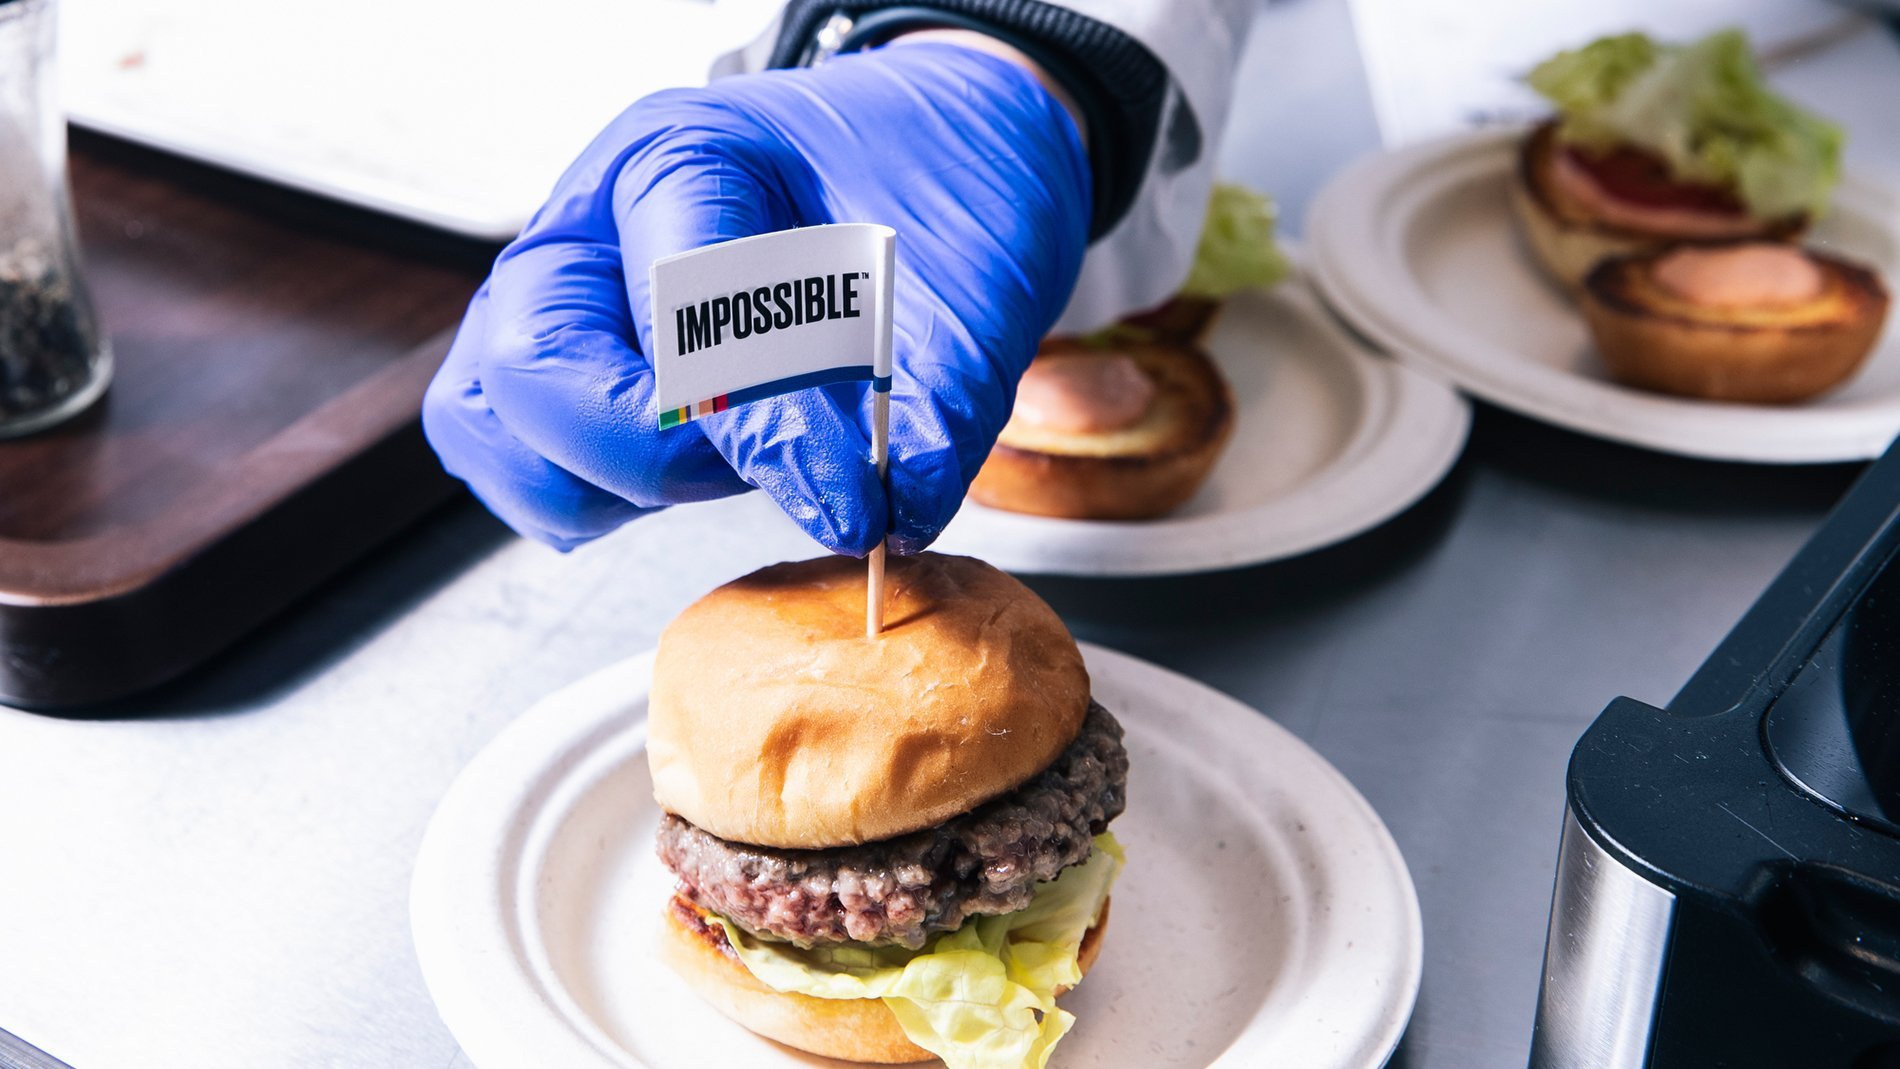 Impossible Foods says its shortage is over